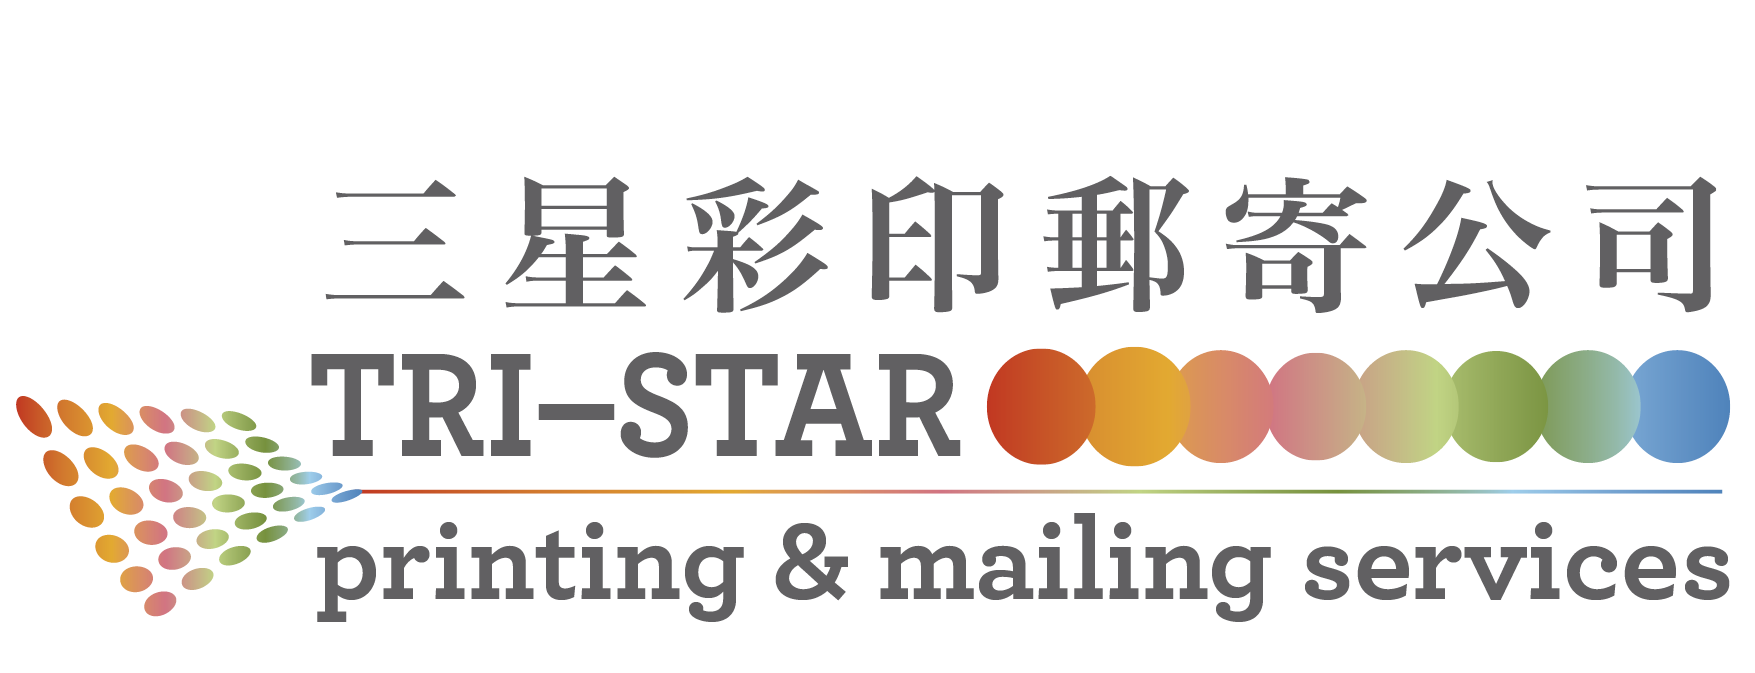 Tri-Star Printing & Mailing Services